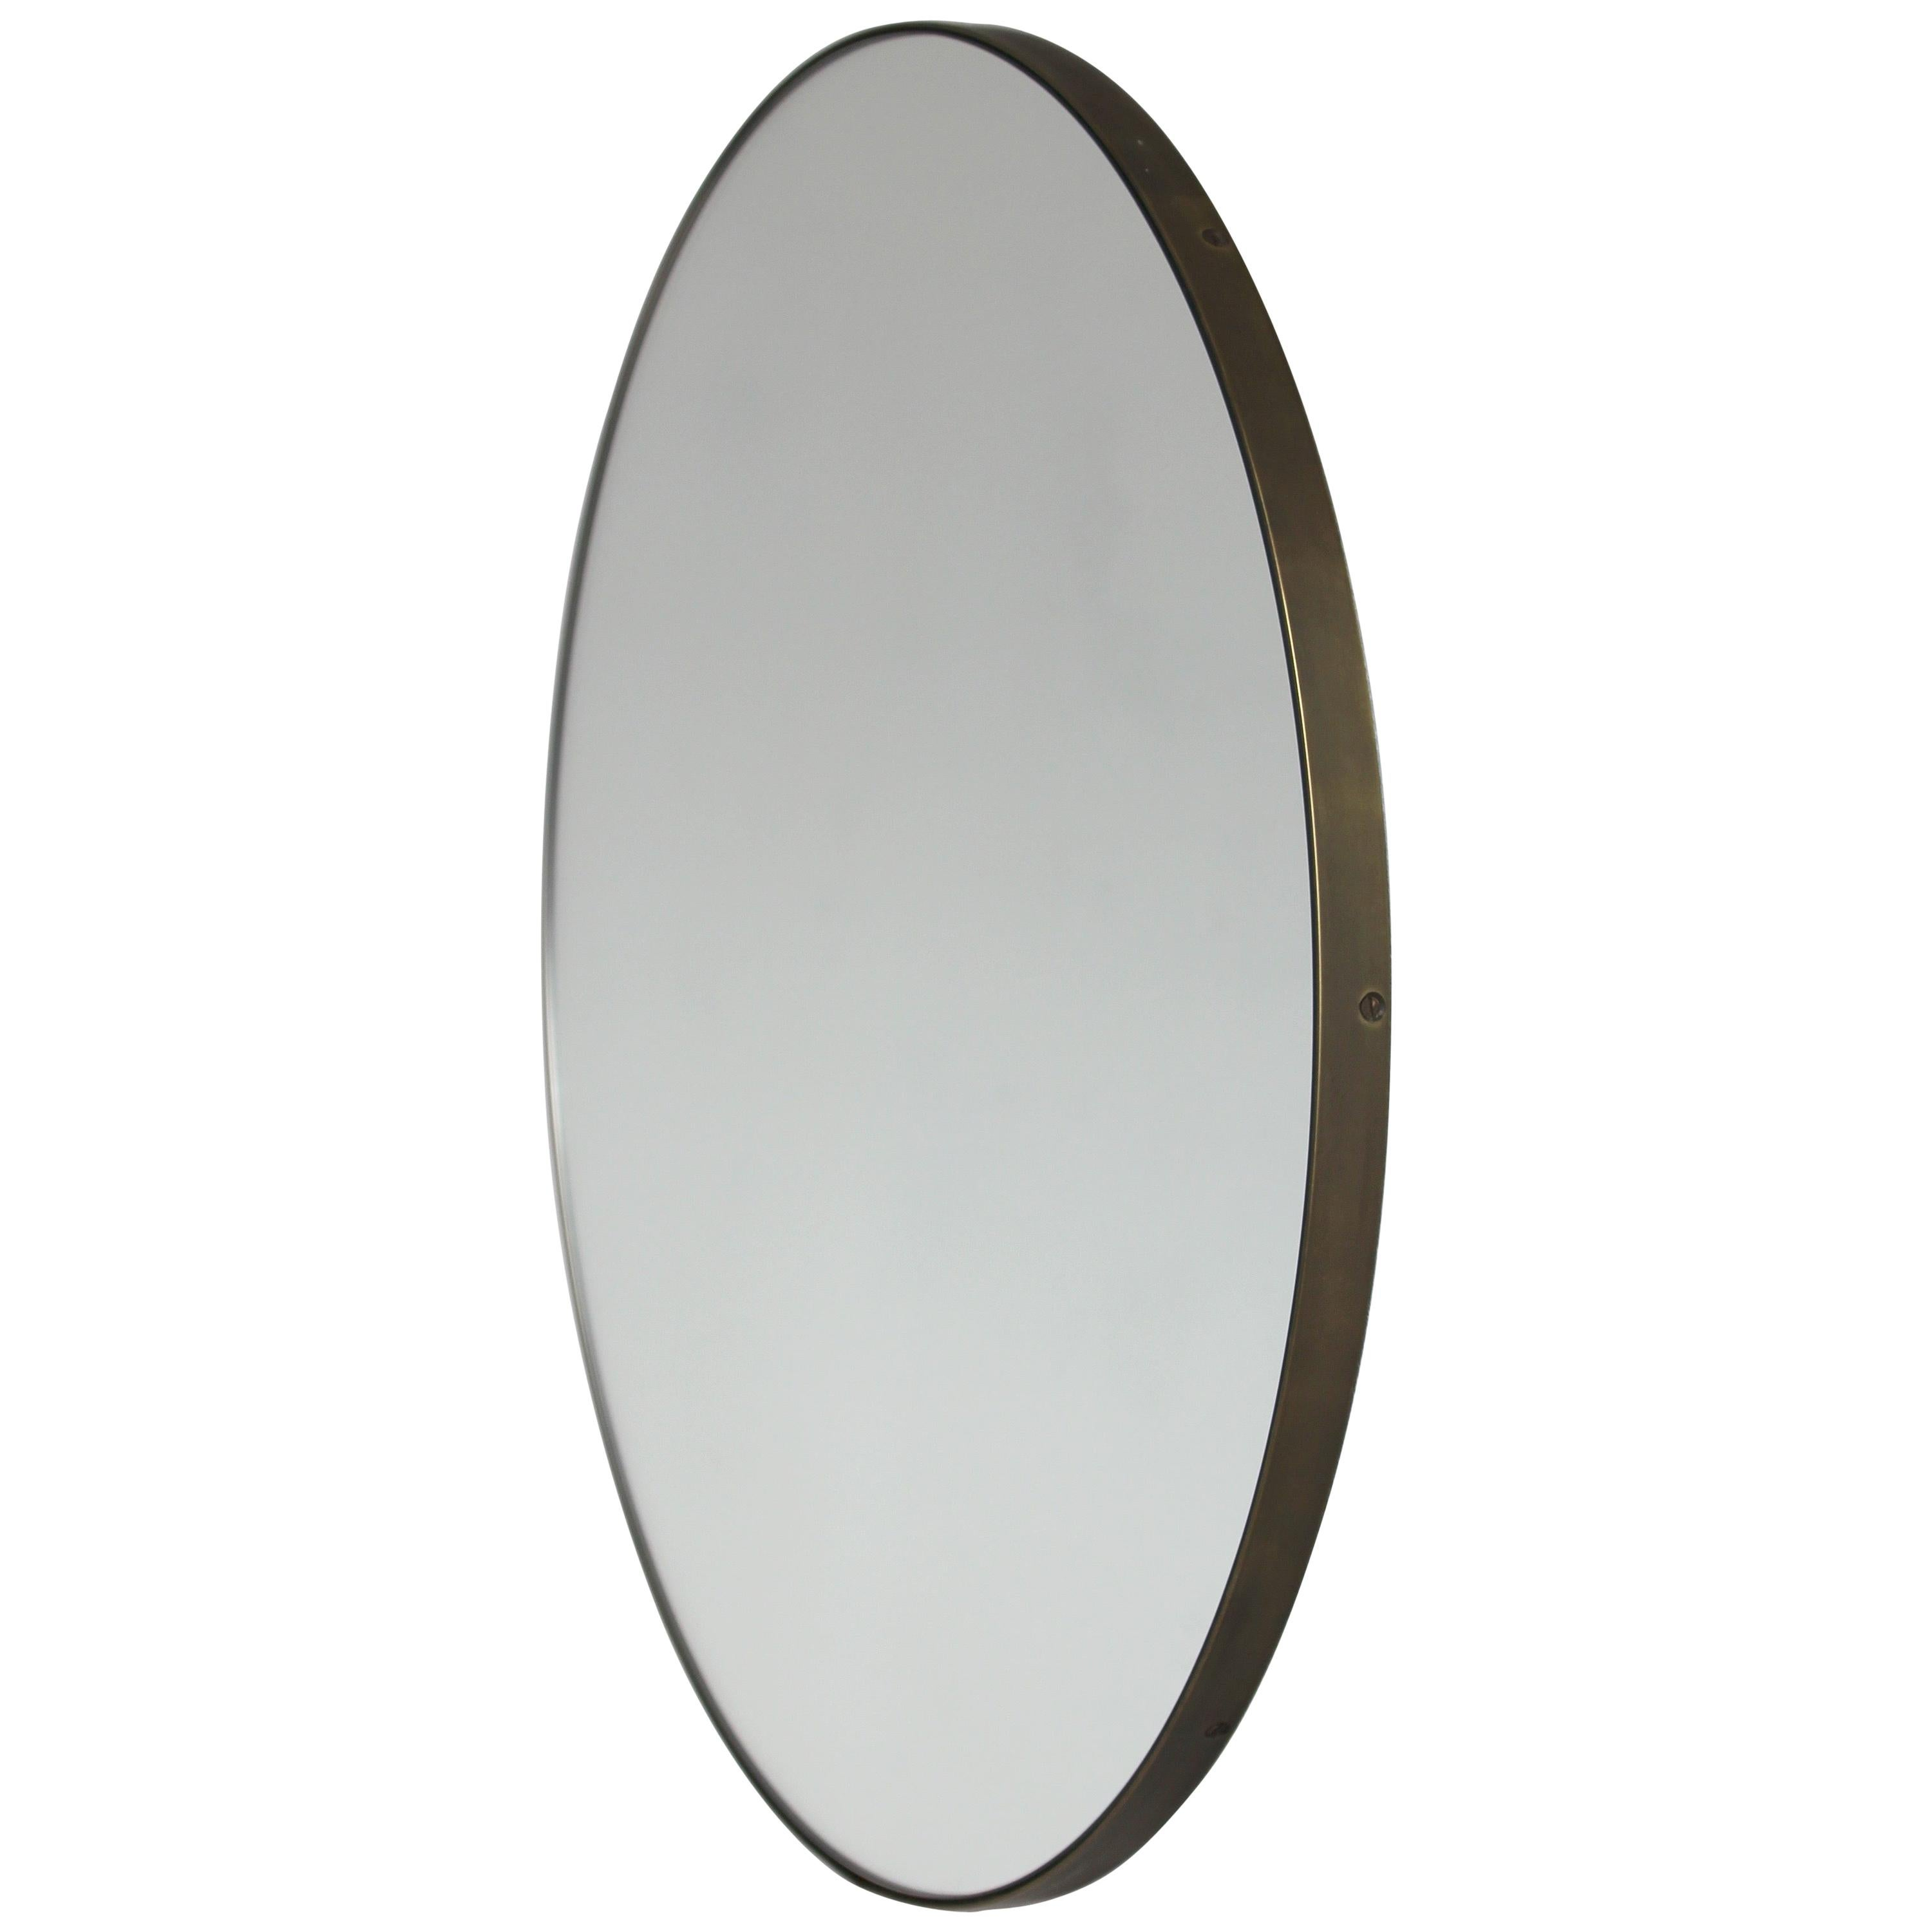 Orbis™ Round Art Deco Mirror with Brass Frame with Bronze Patina - Small